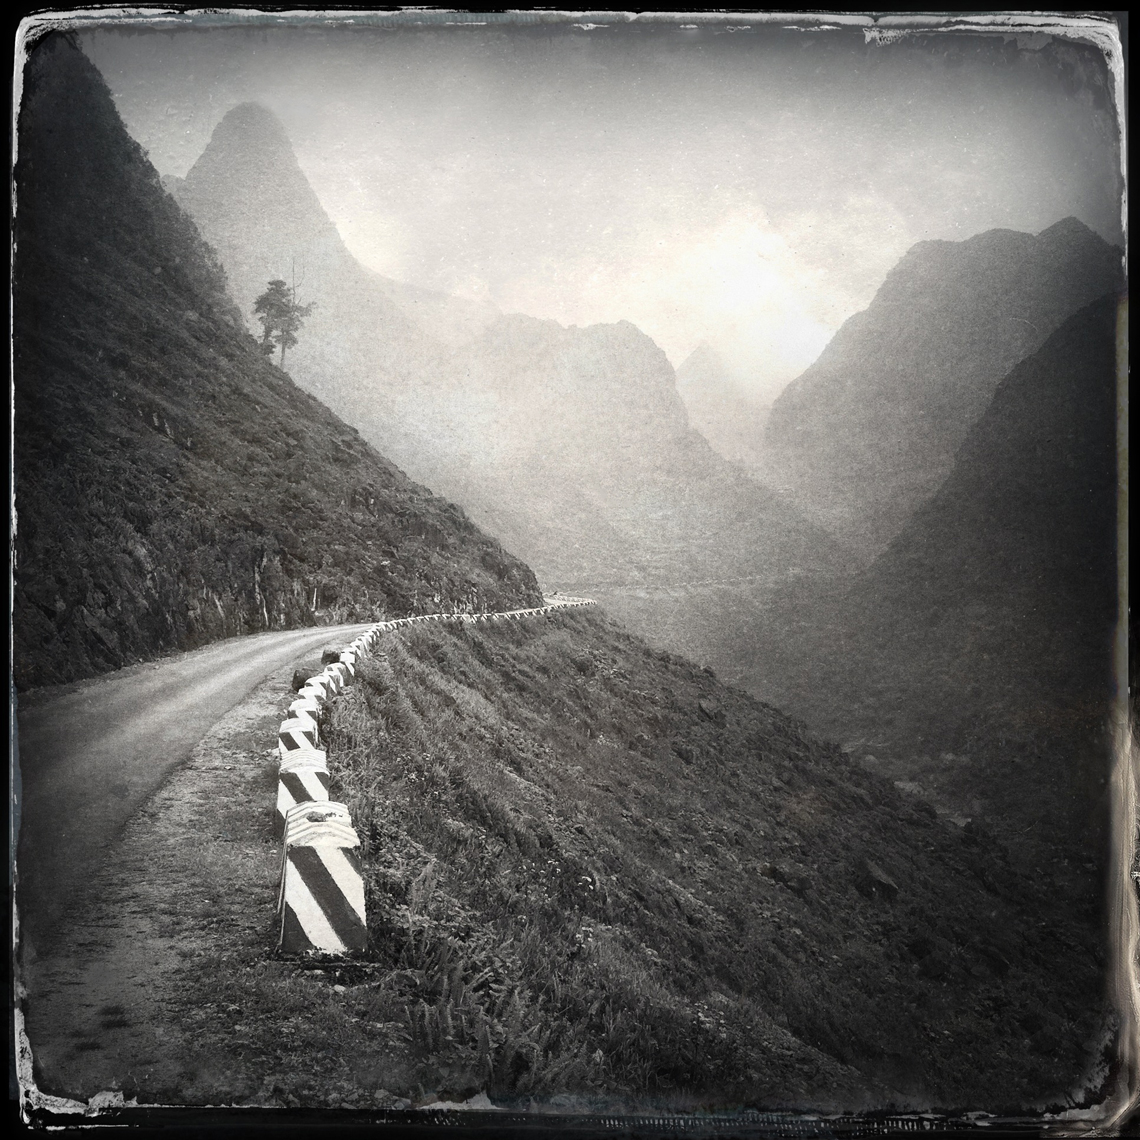 Jon Wyatt Photography - mountain road near Dong Van, Ha Giang Province, North East Vietnam. Hipstamatic